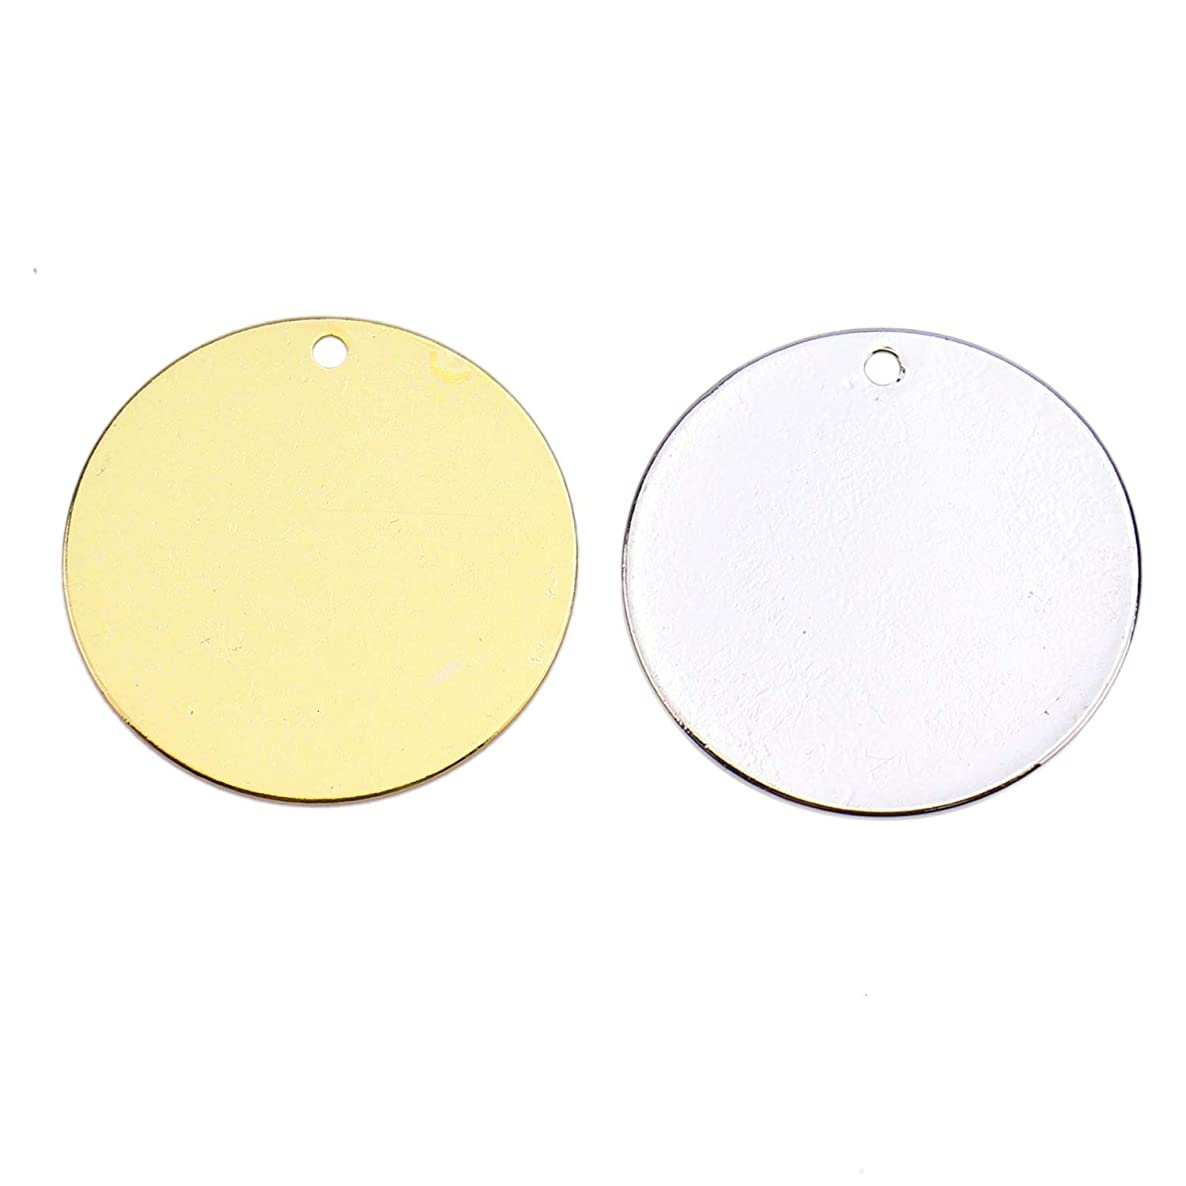 Monrocco 30pcs Brass Stamping Blanks - 20 mm? - Round Blank Stamping Tags Hole for Jewelry Making (Gold & Silver)